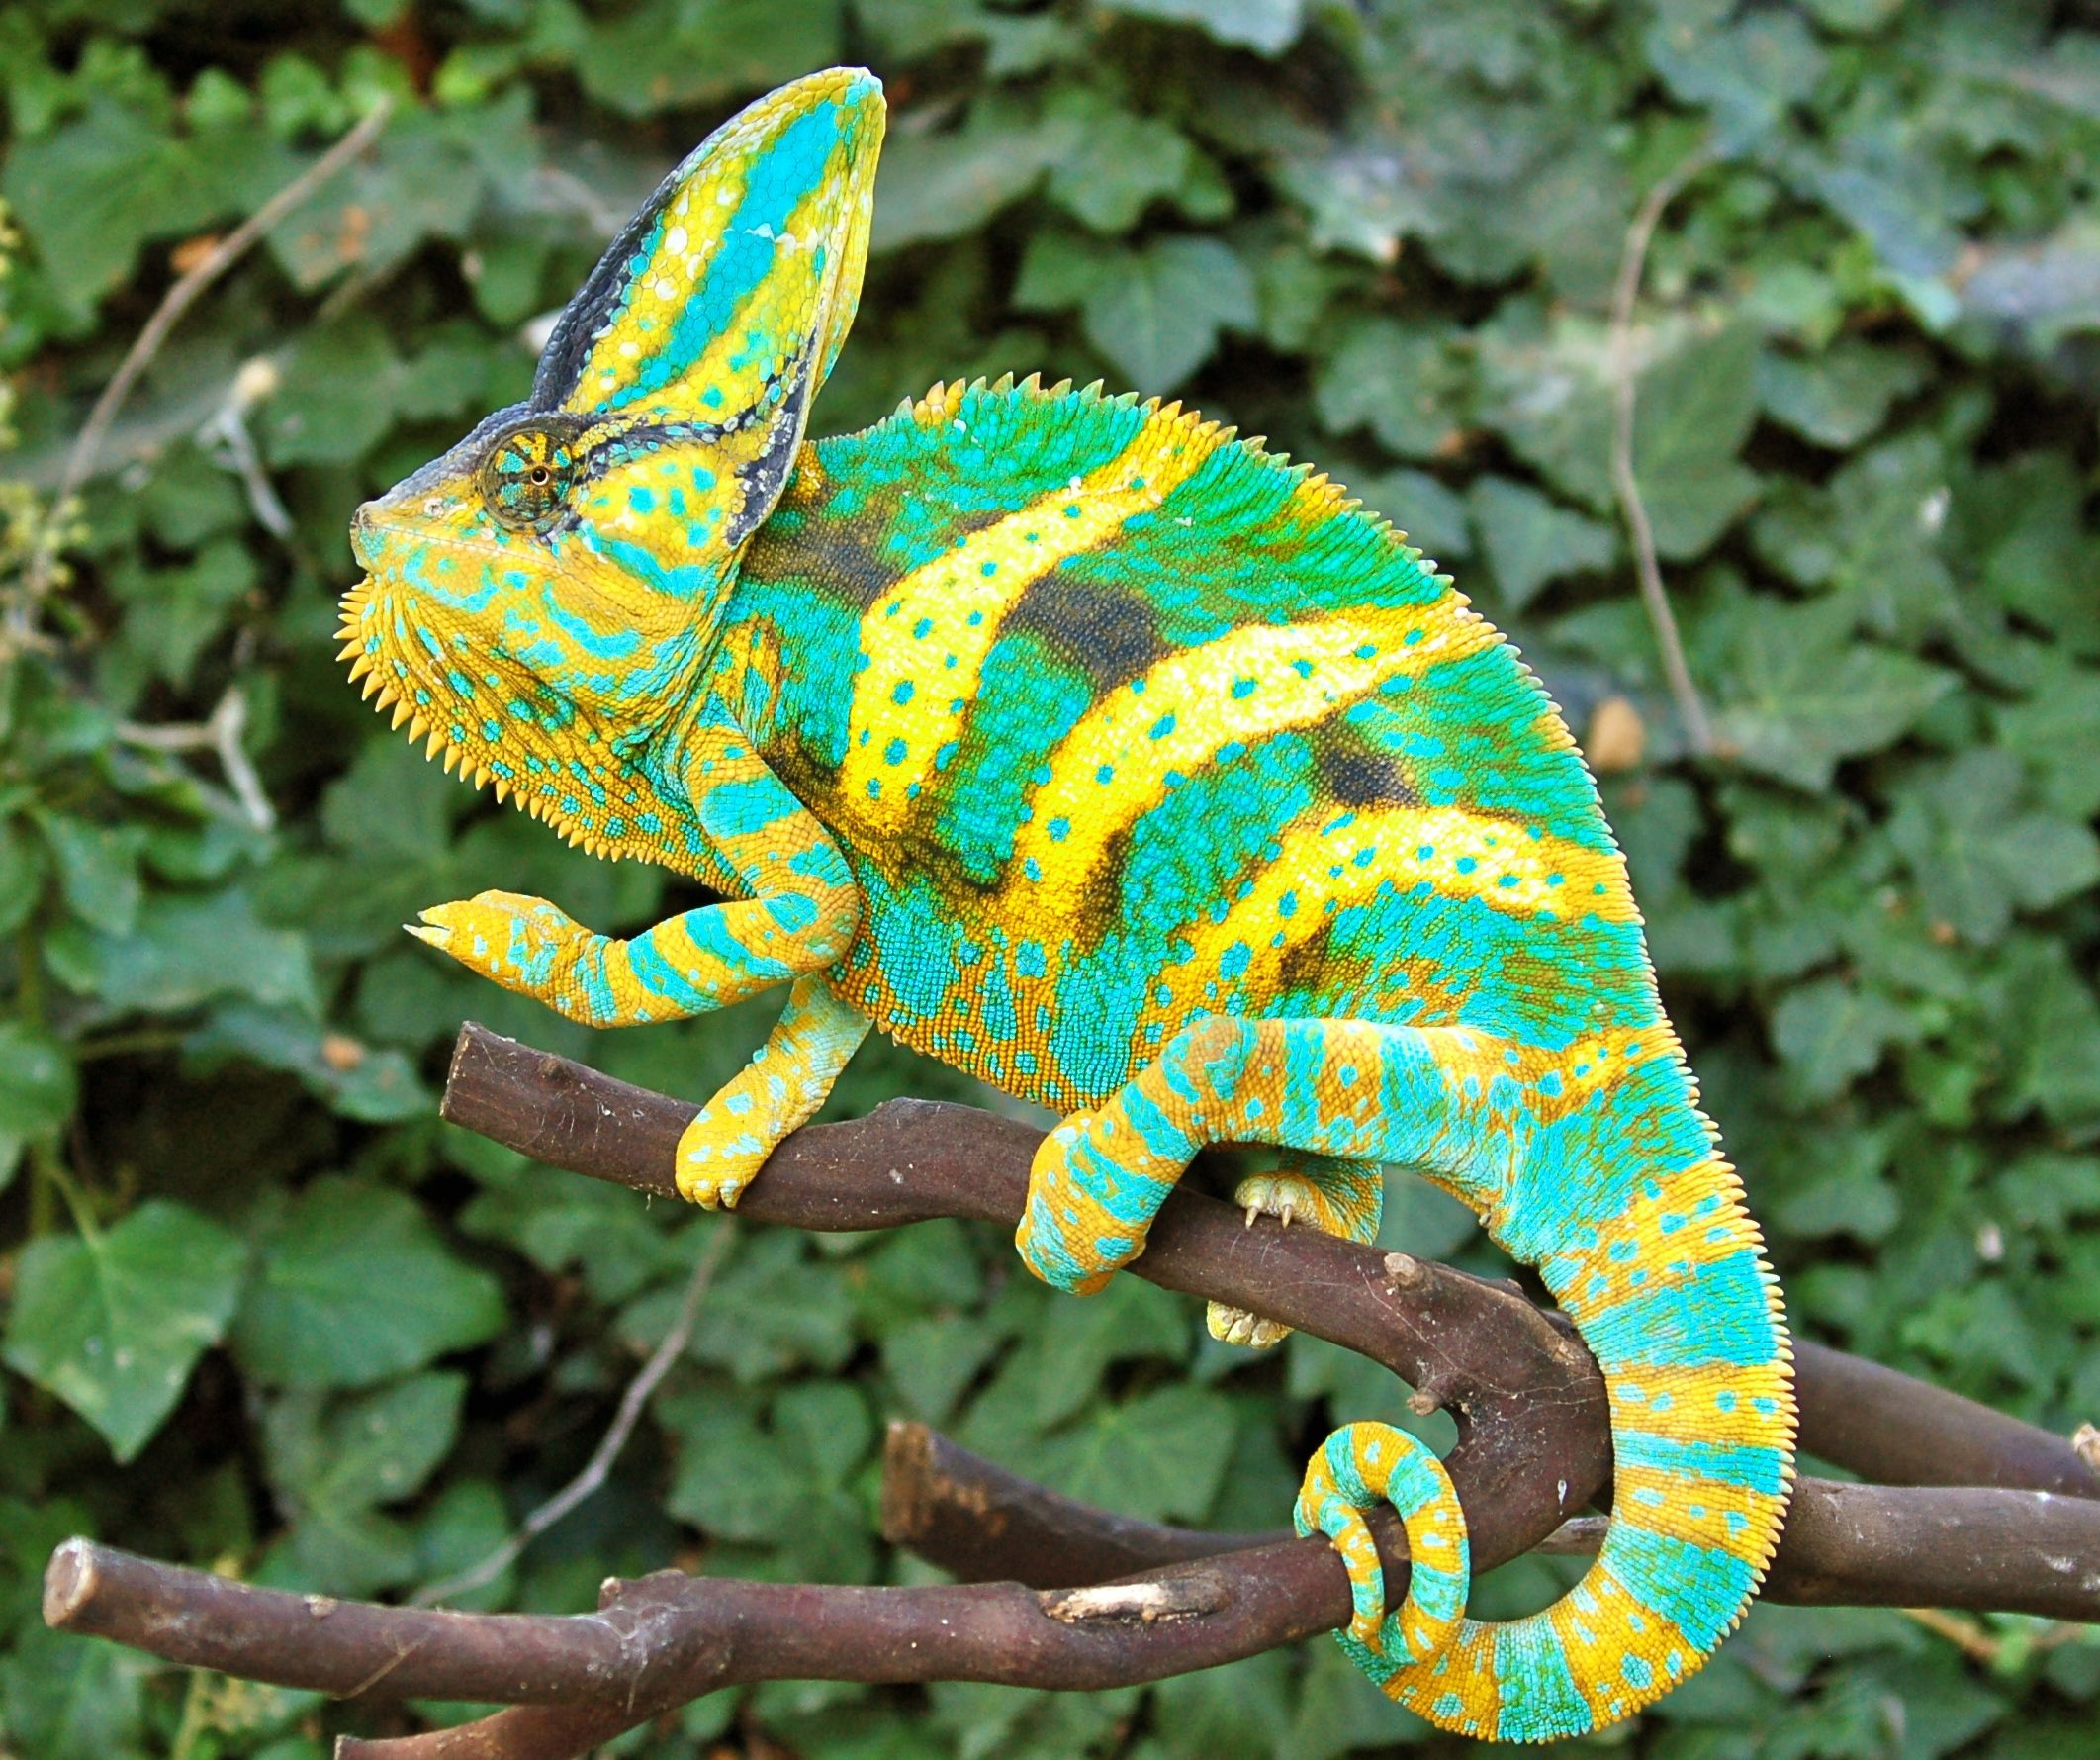 Premium high color juvenile veiled chameleons for sale online veiled chameleon for sale driskel veiled chameleon for sale buy veiled chameleon veiled thecheapjerseys Choice Image